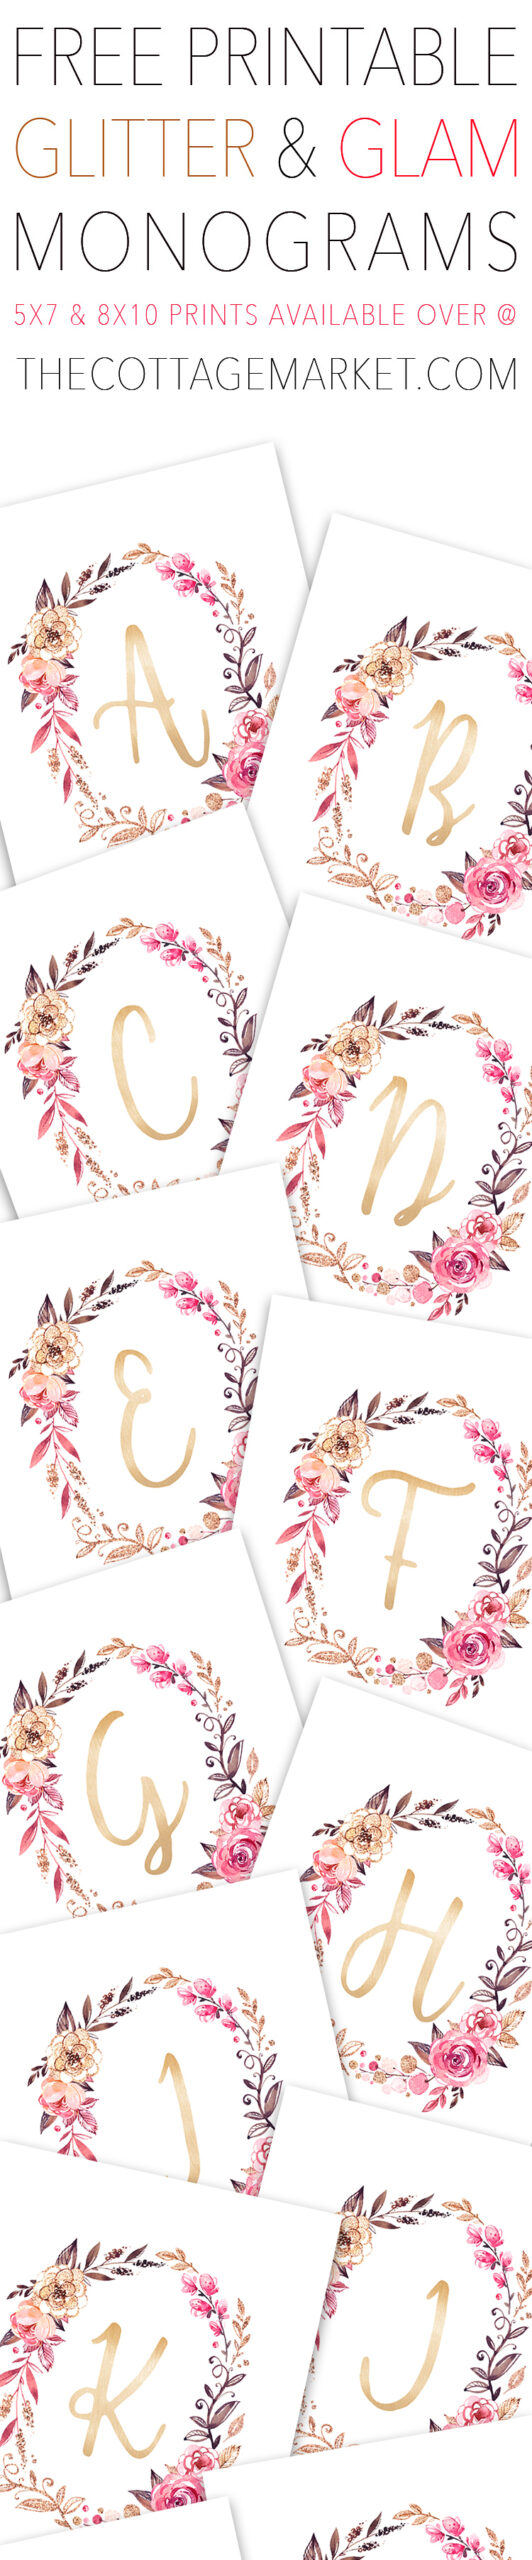 picture about Free Printable Monogram named Glitter and Glam Monogram Wall Artwork - Totally free Lovely Elements For Your self